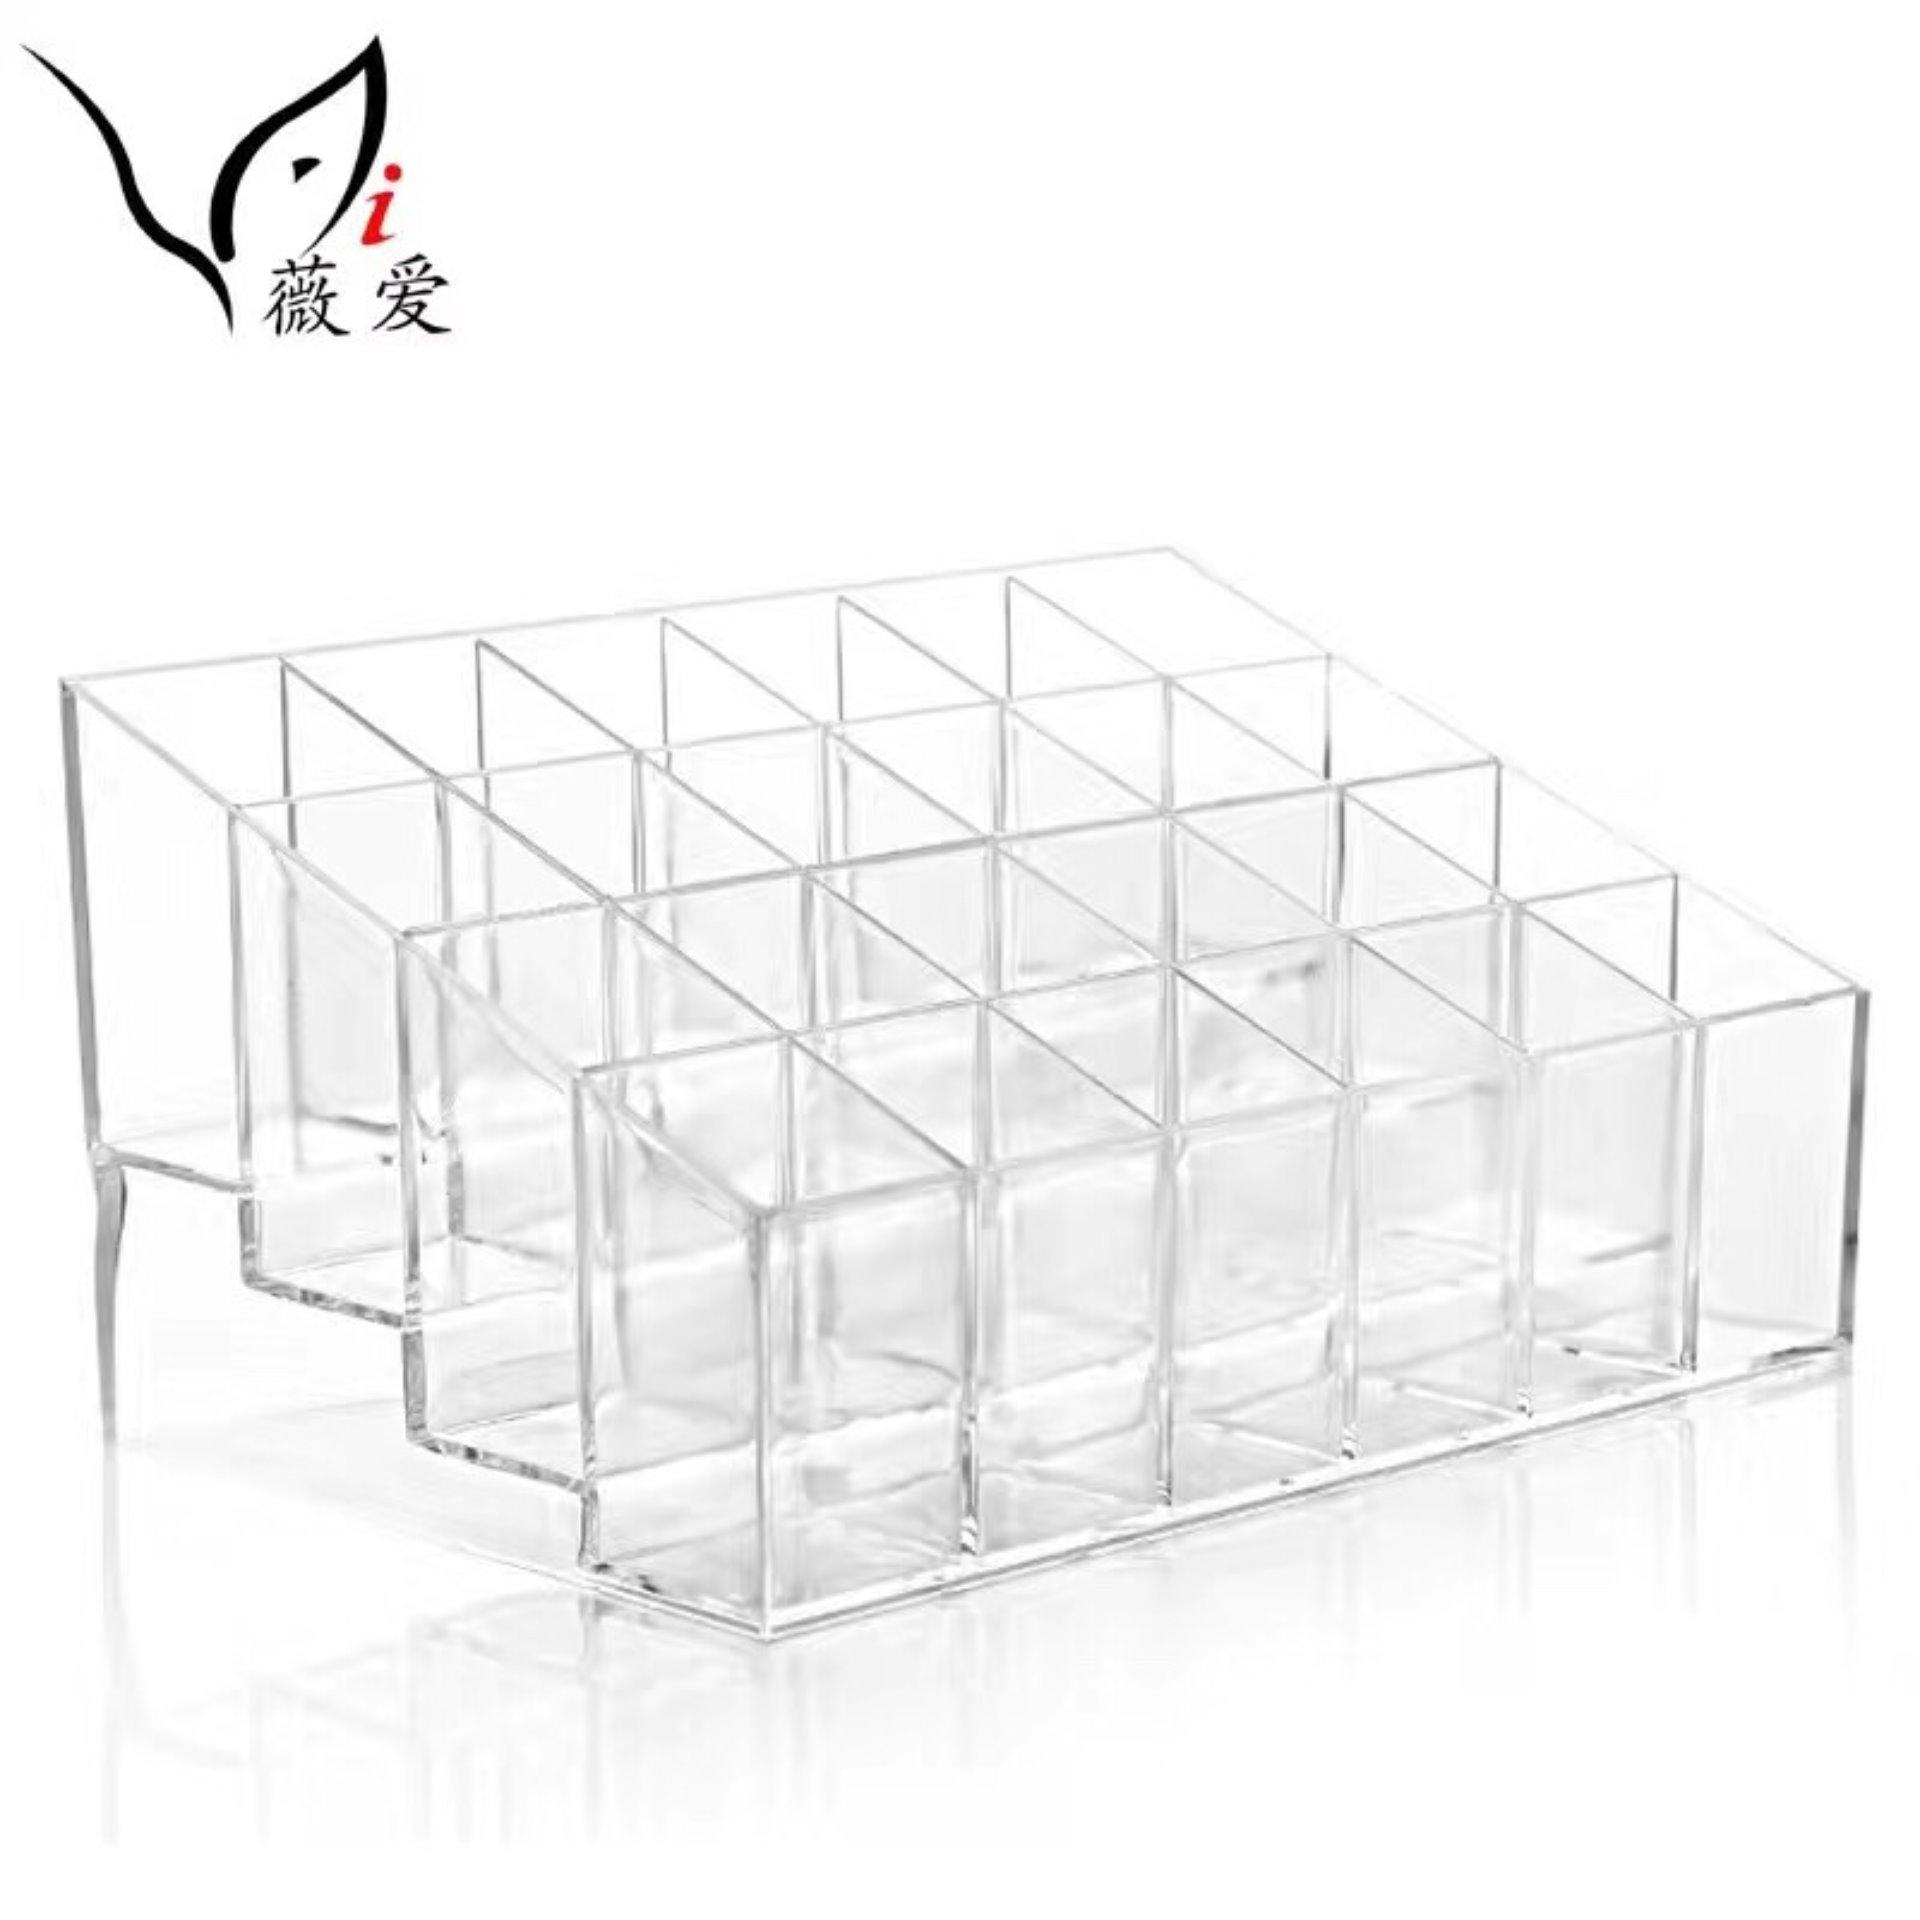 Clear Acrylic 24 Lipstick Holder Display Stand Cosmetic Storage Rack  Organizer Makeup Make Up Case Box Container Philippines